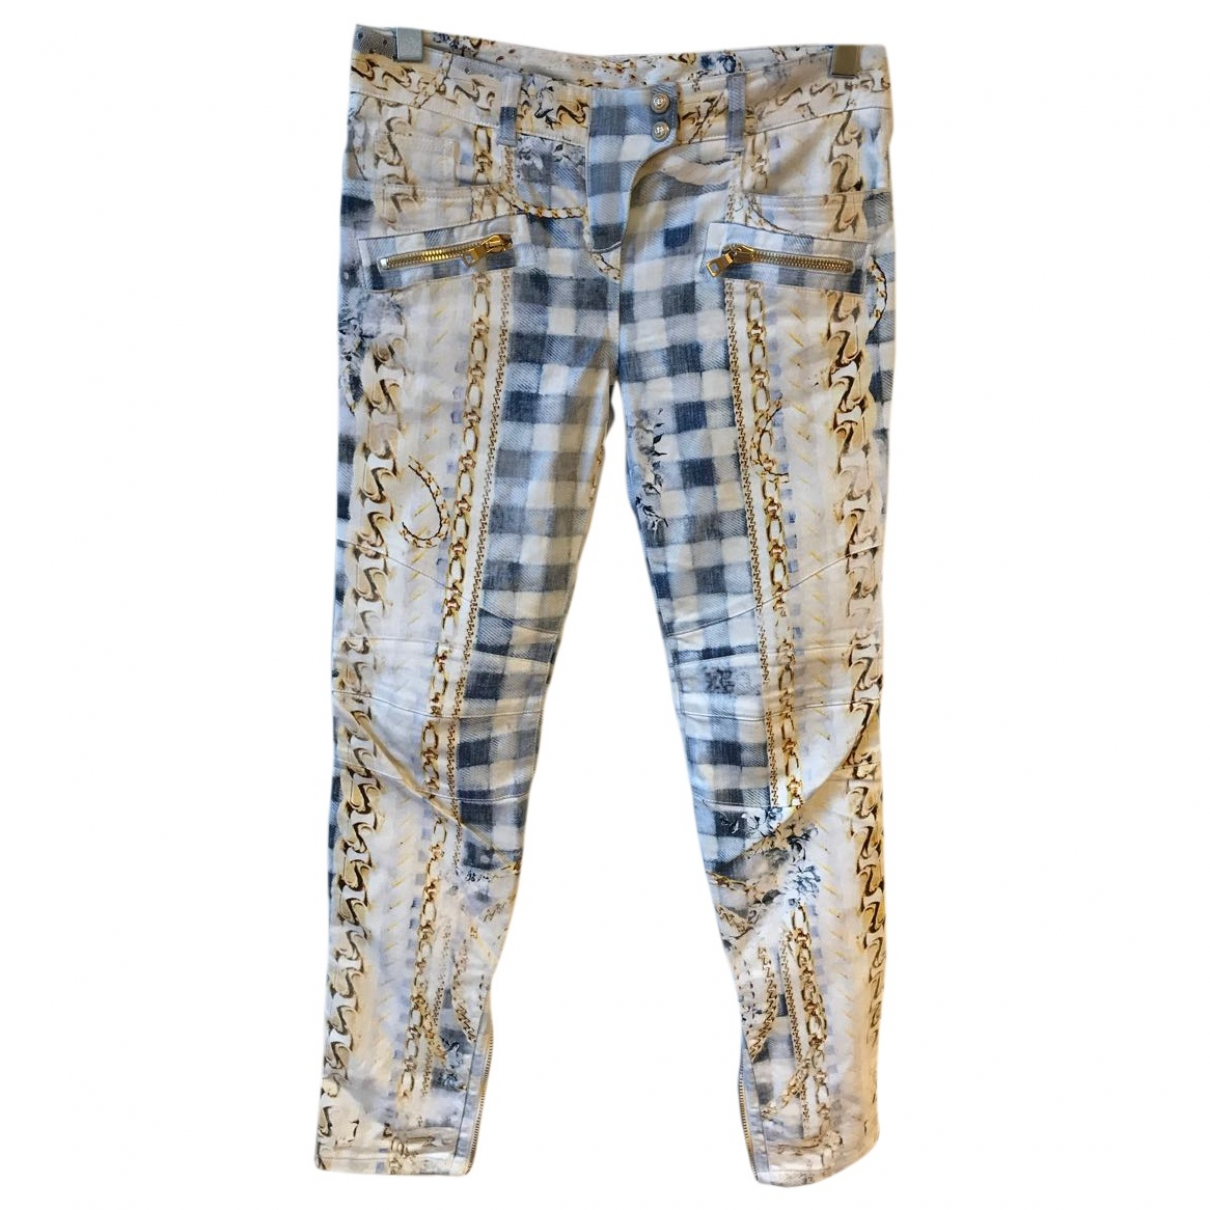 Balmain \N Multicolour Cotton - elasthane Jeans for Women 40 FR